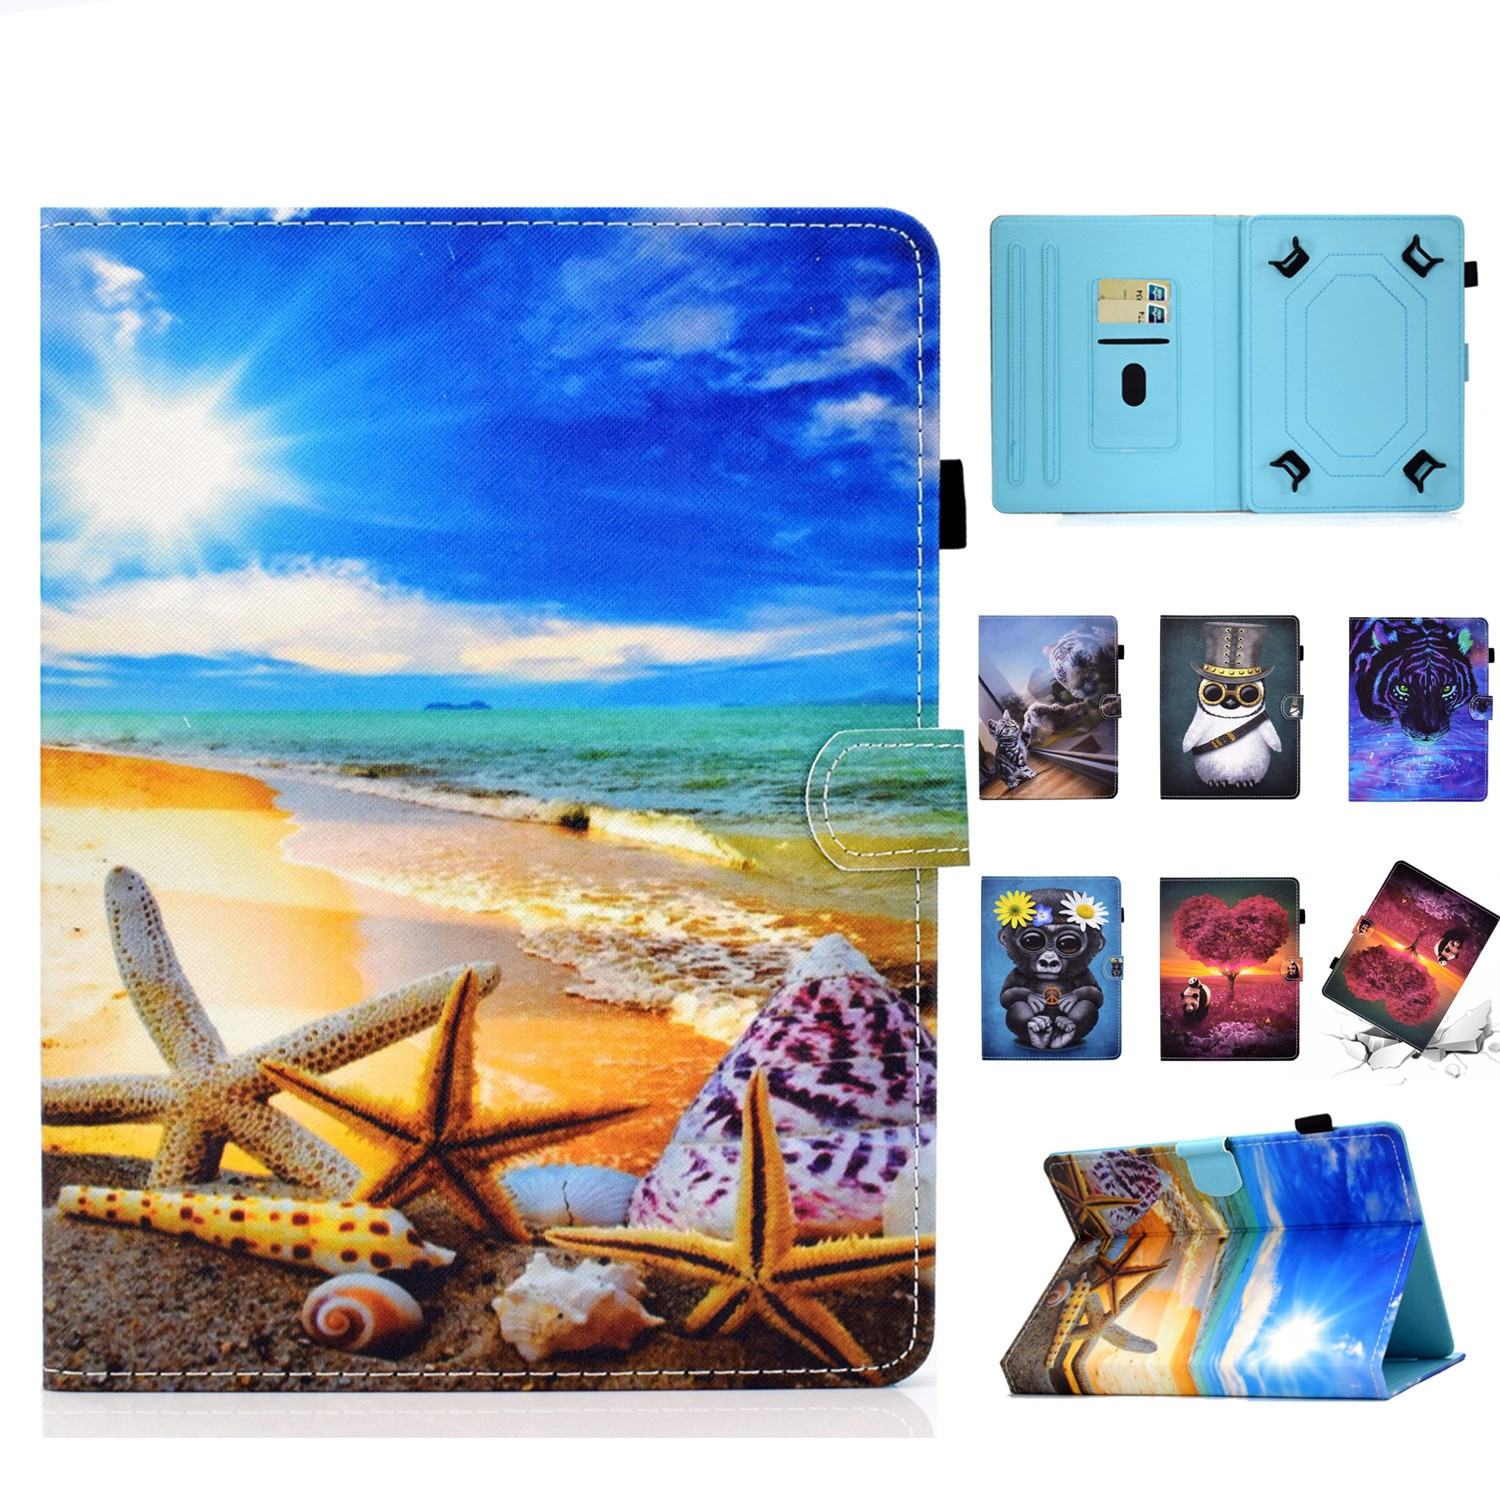 PU Leather Universal 6 Inch Print Case for Kindle Kobo Glo Aura Touch Sony Prs ONYX Boox C67ml Kepler PocketBook 6.0'' Ebook